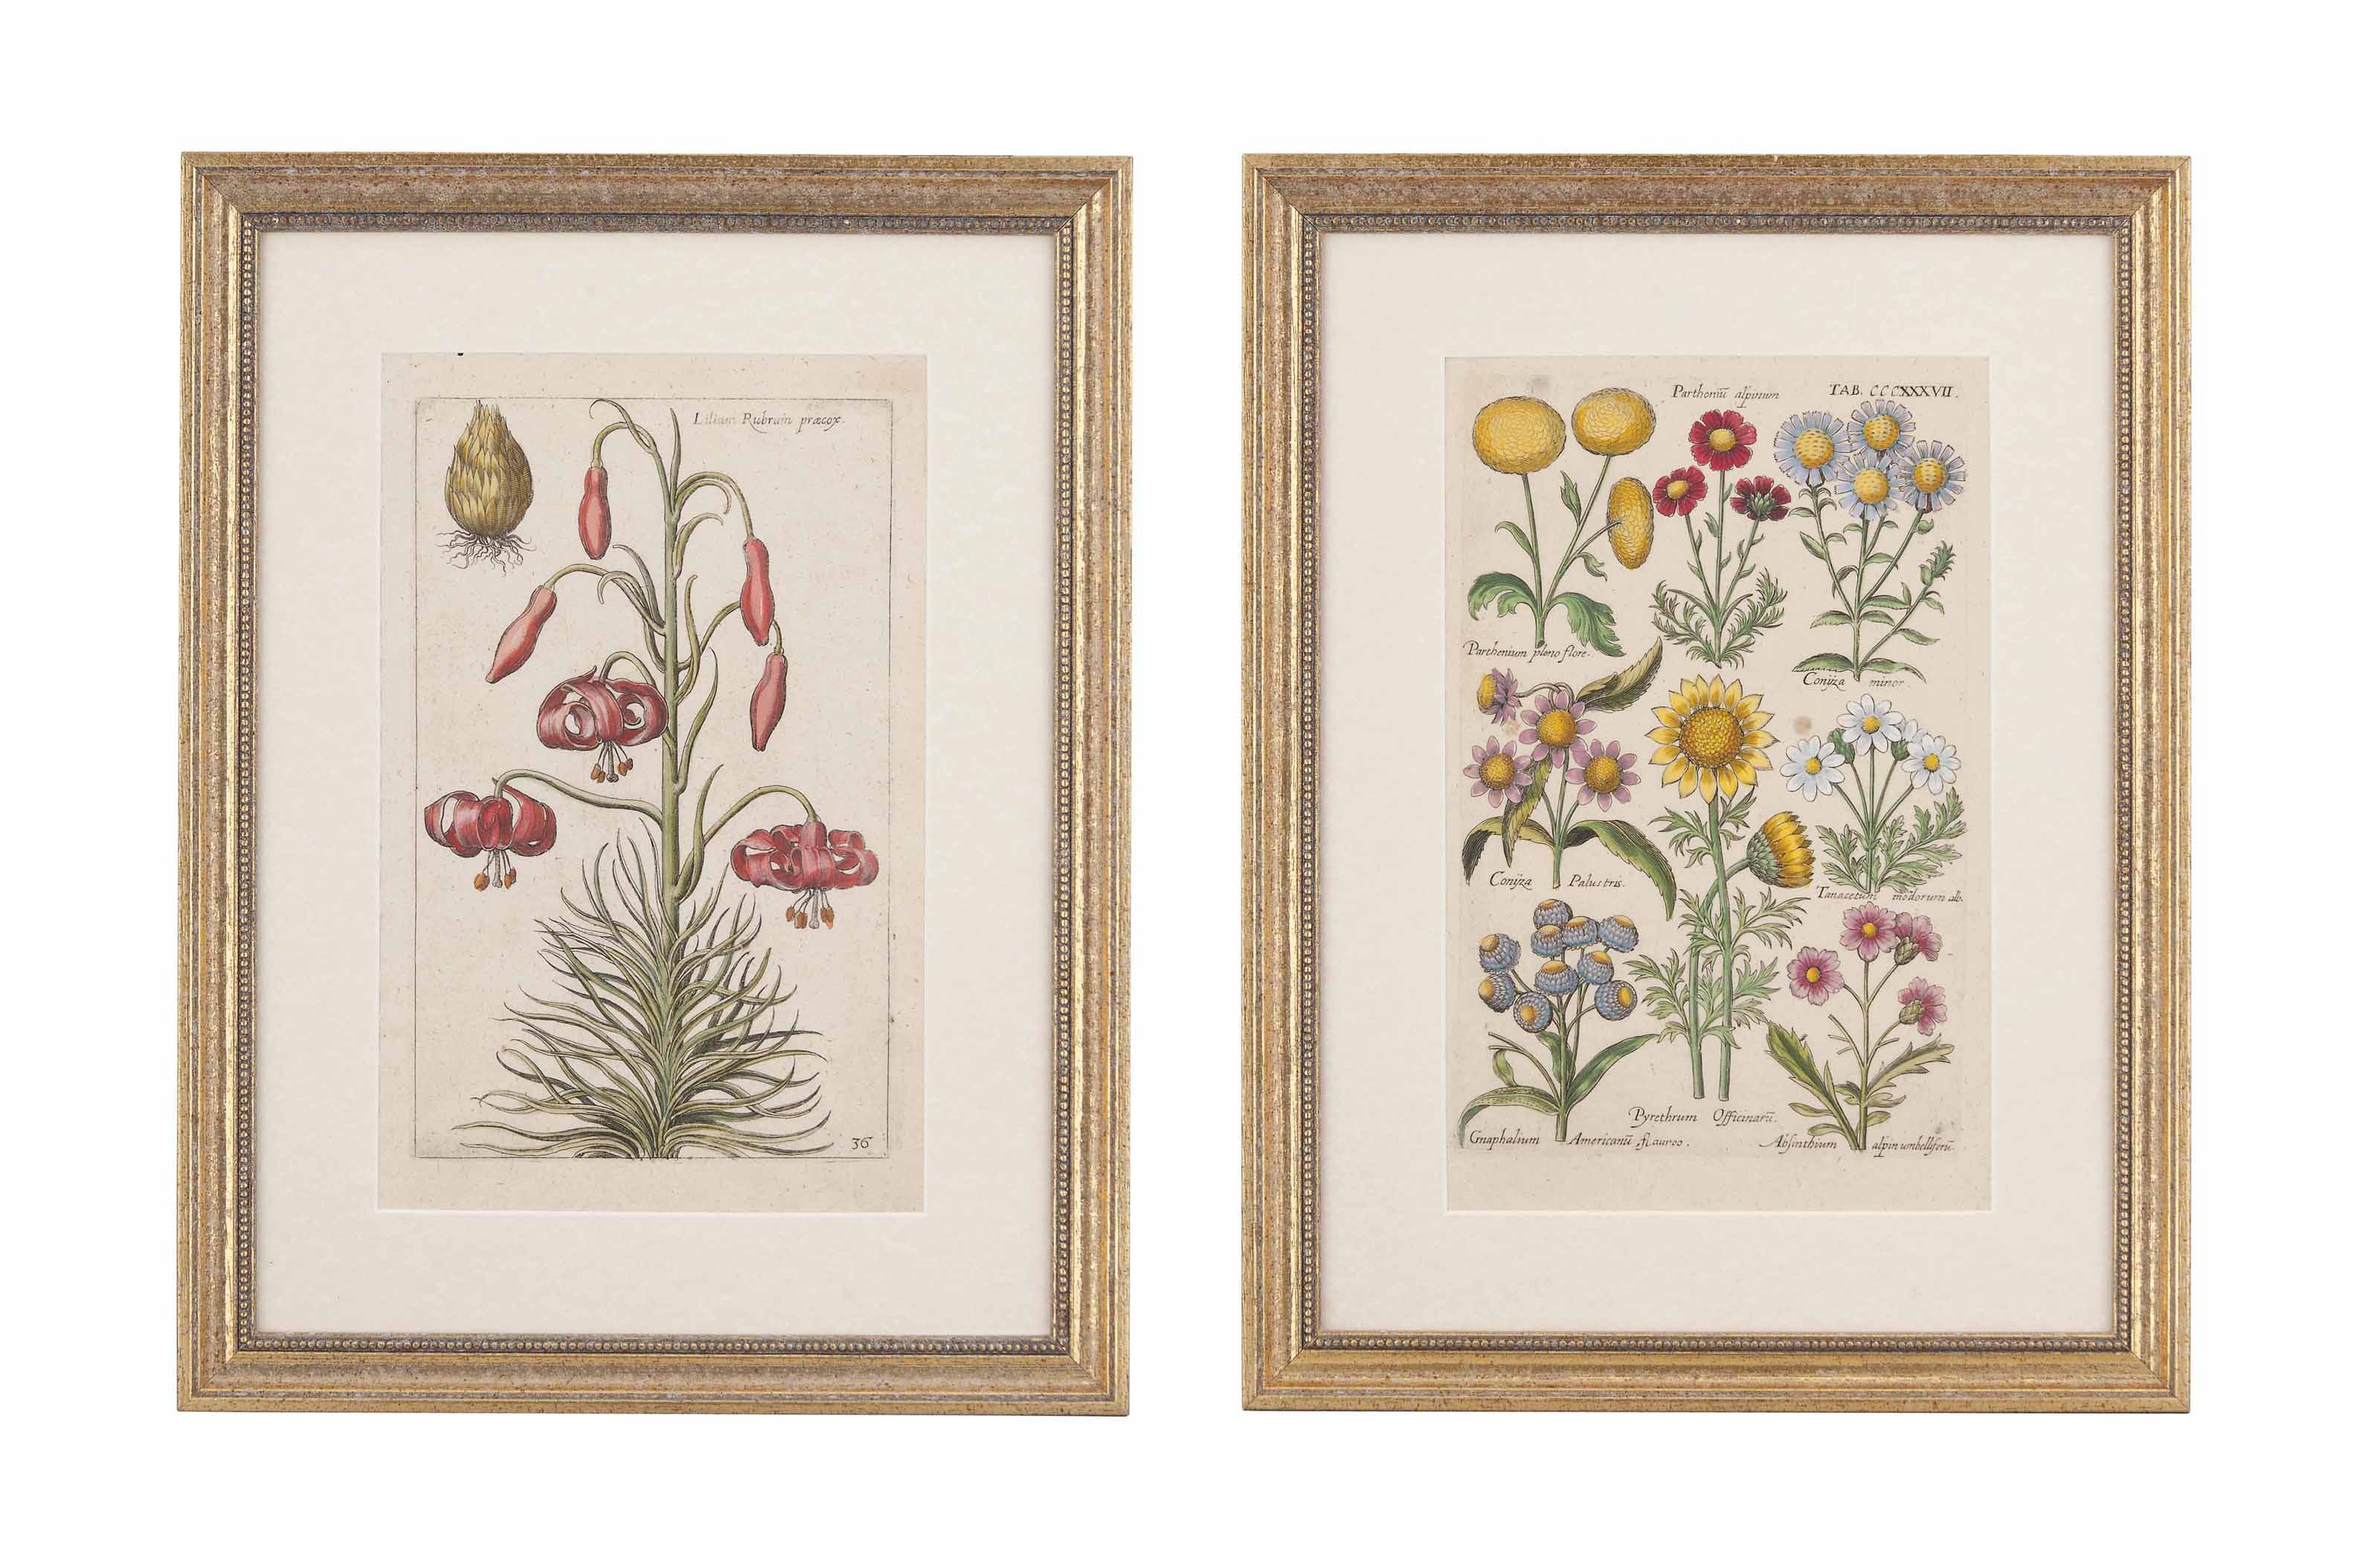 TWELVE BOTANICAL ENGRAVINGS FROM THE BOOK 'FLORILEGIUM NOVUM'